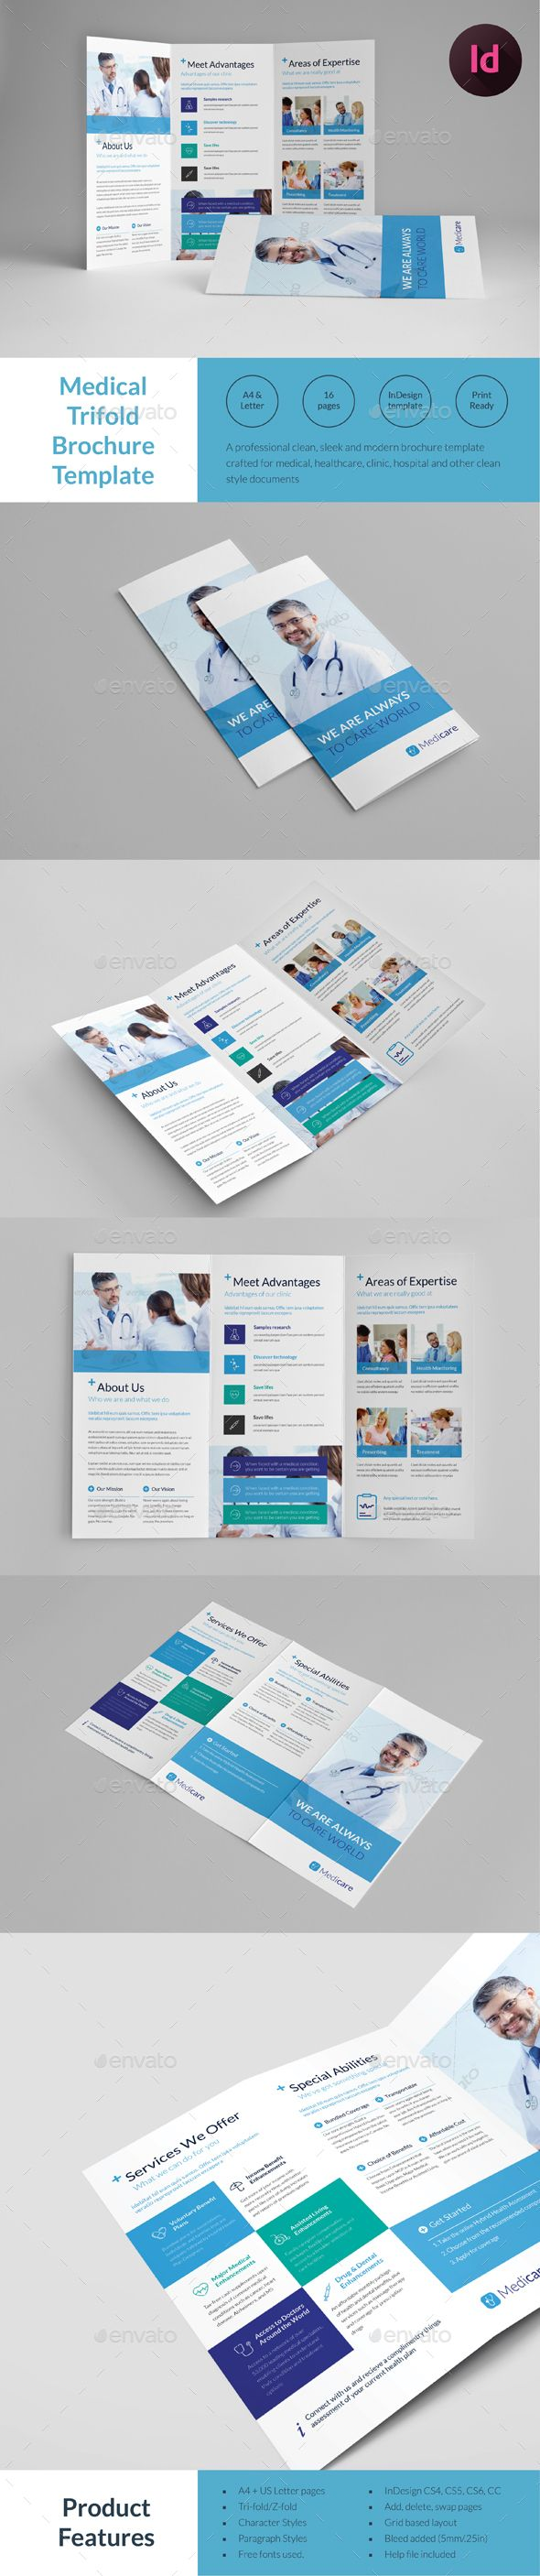 Medical Tri-fold Brochure Template InDesign INDD. Download here ...